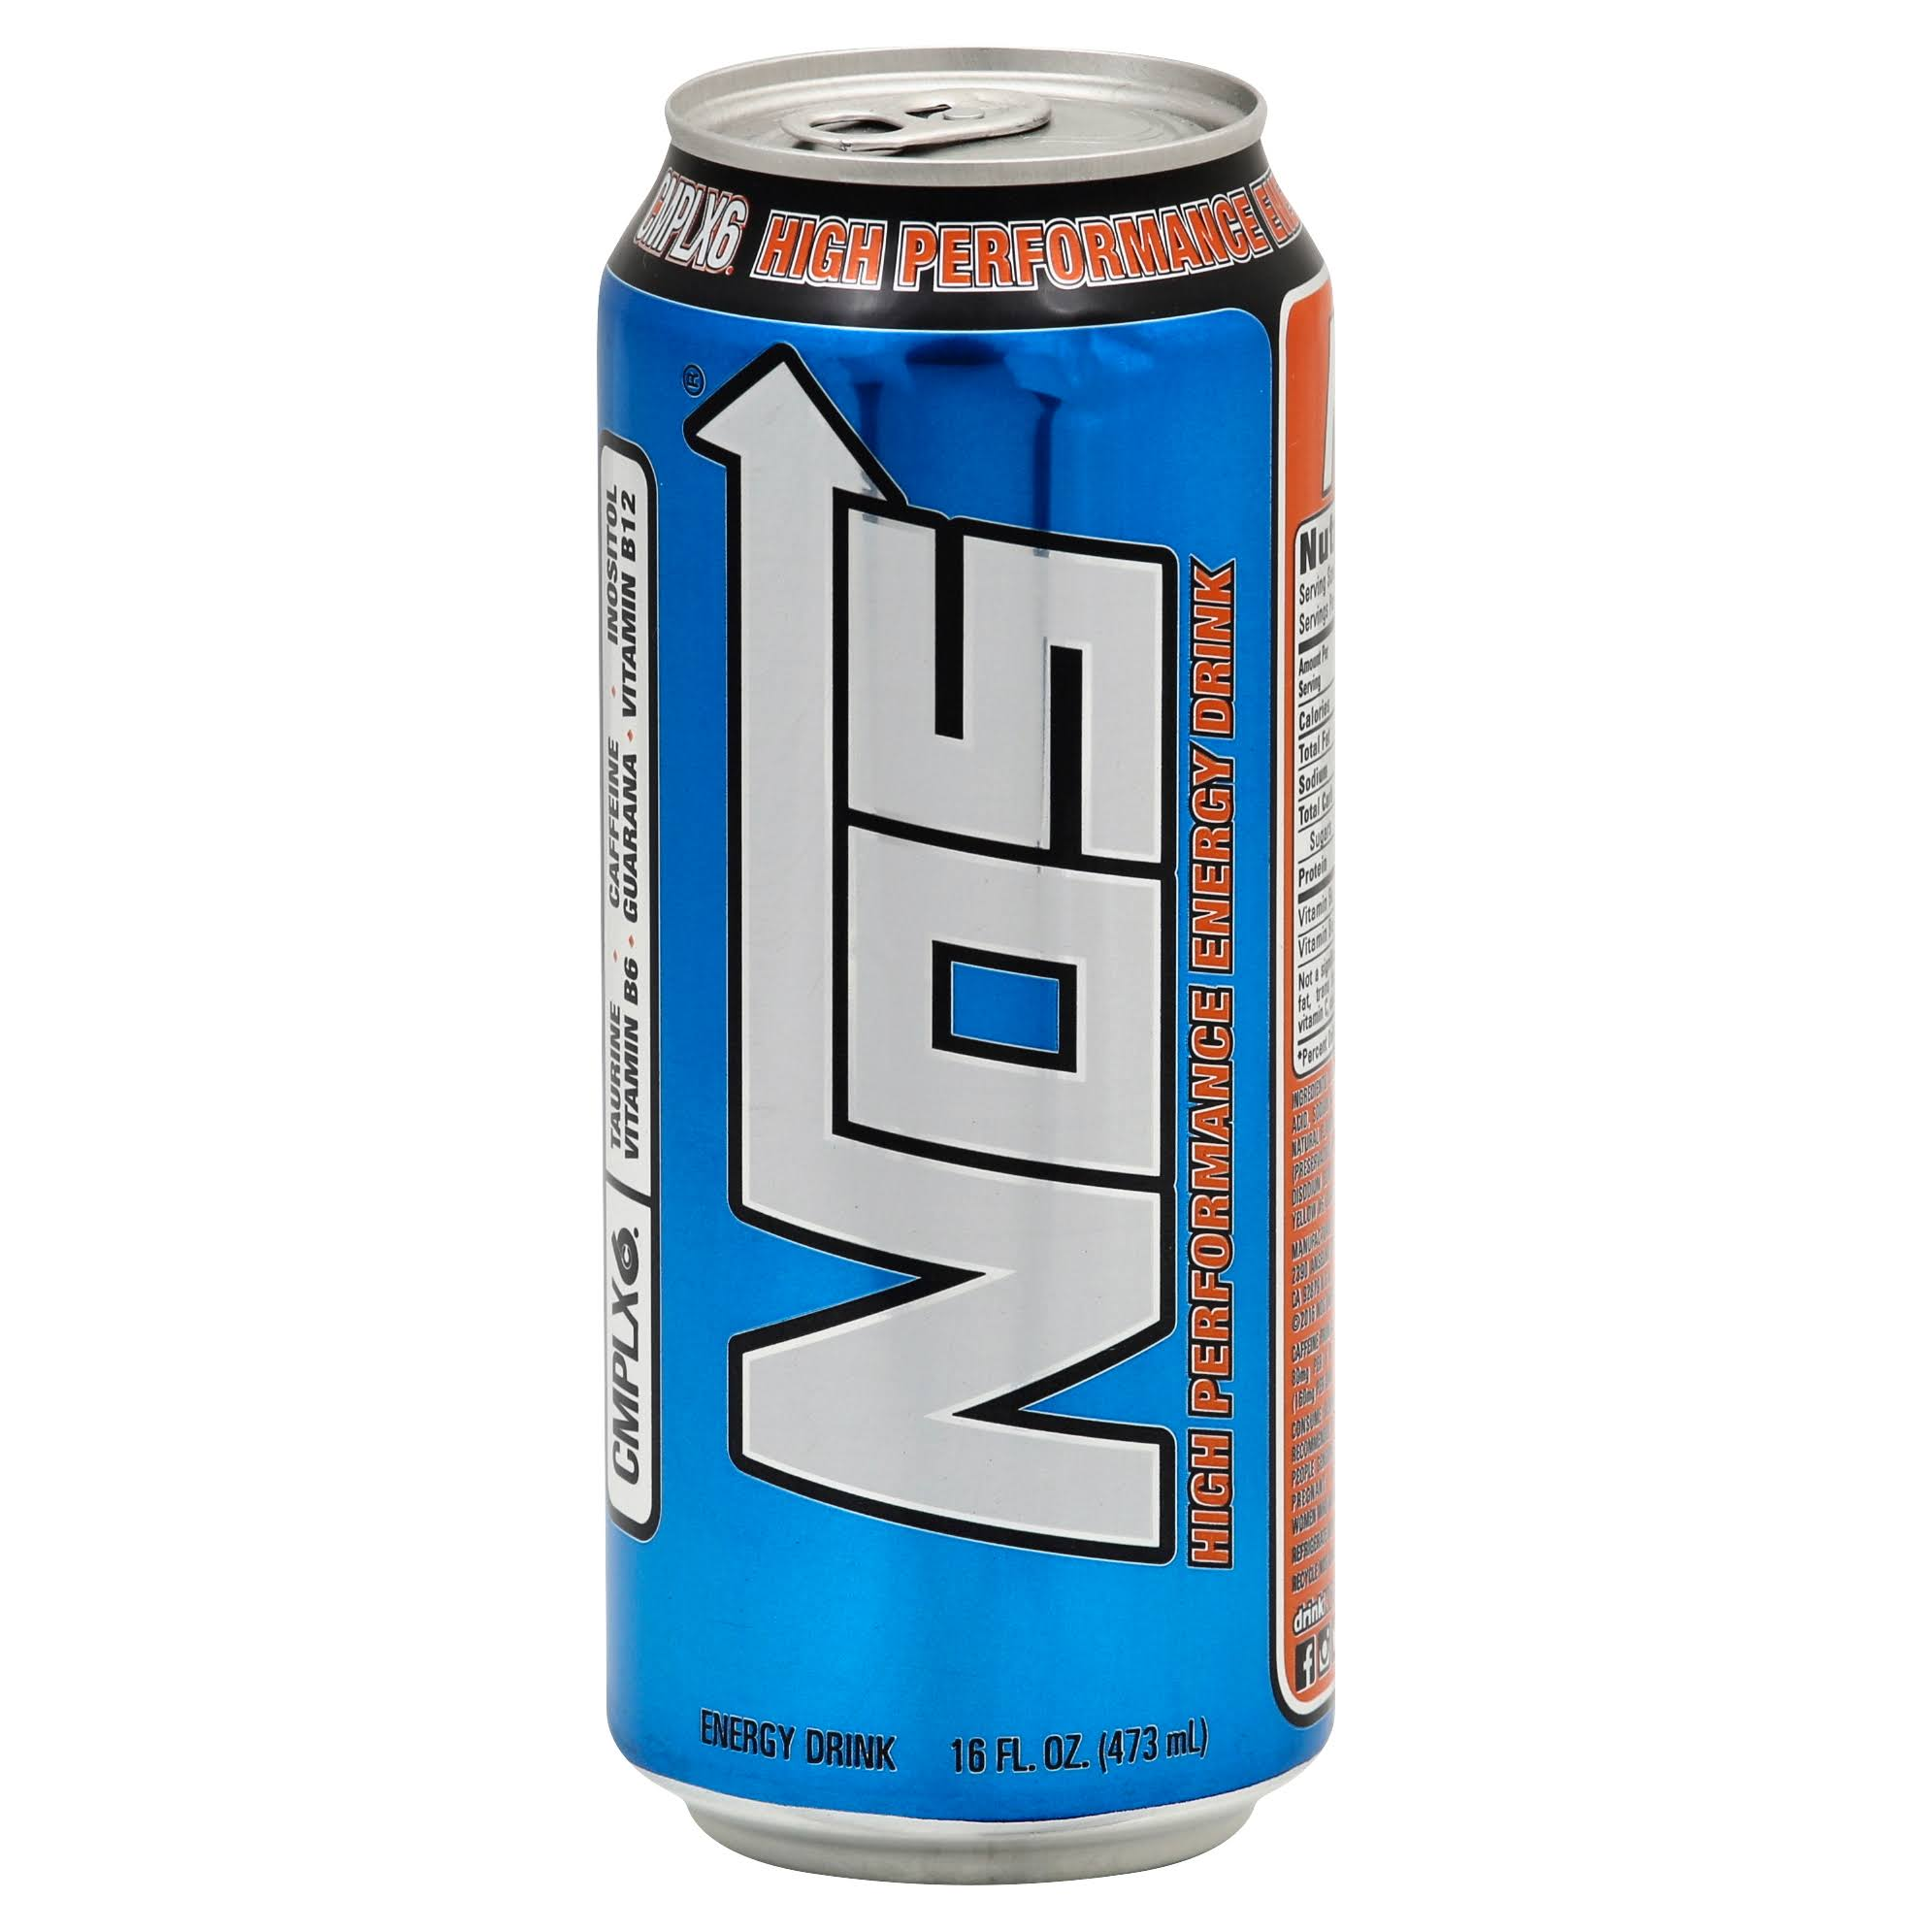 Nos Energy Drink, High Performance - 16 fl oz